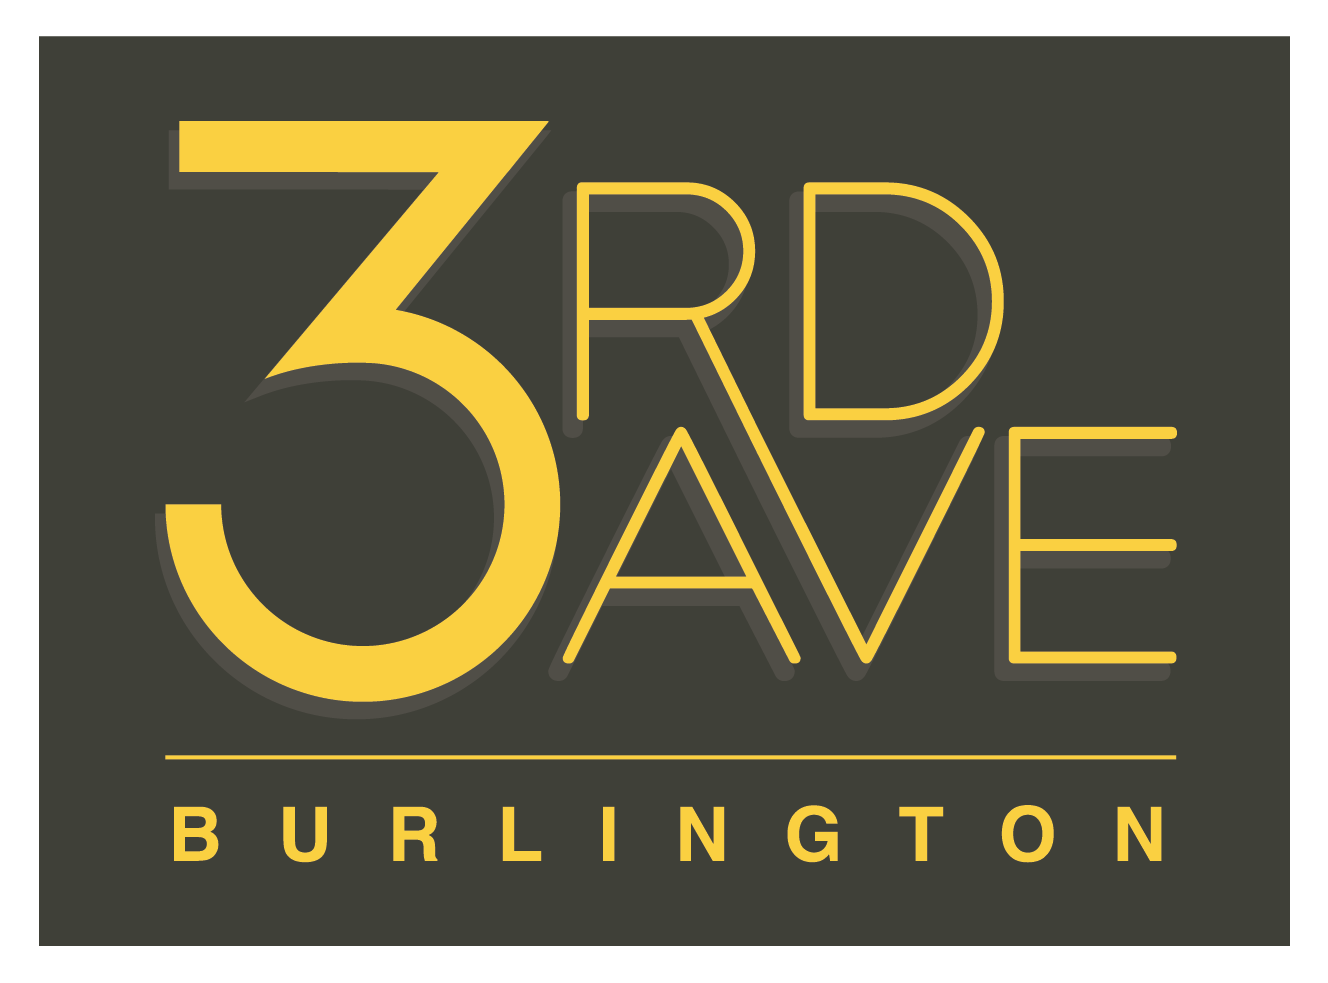 3rd Ave Burlington Logo